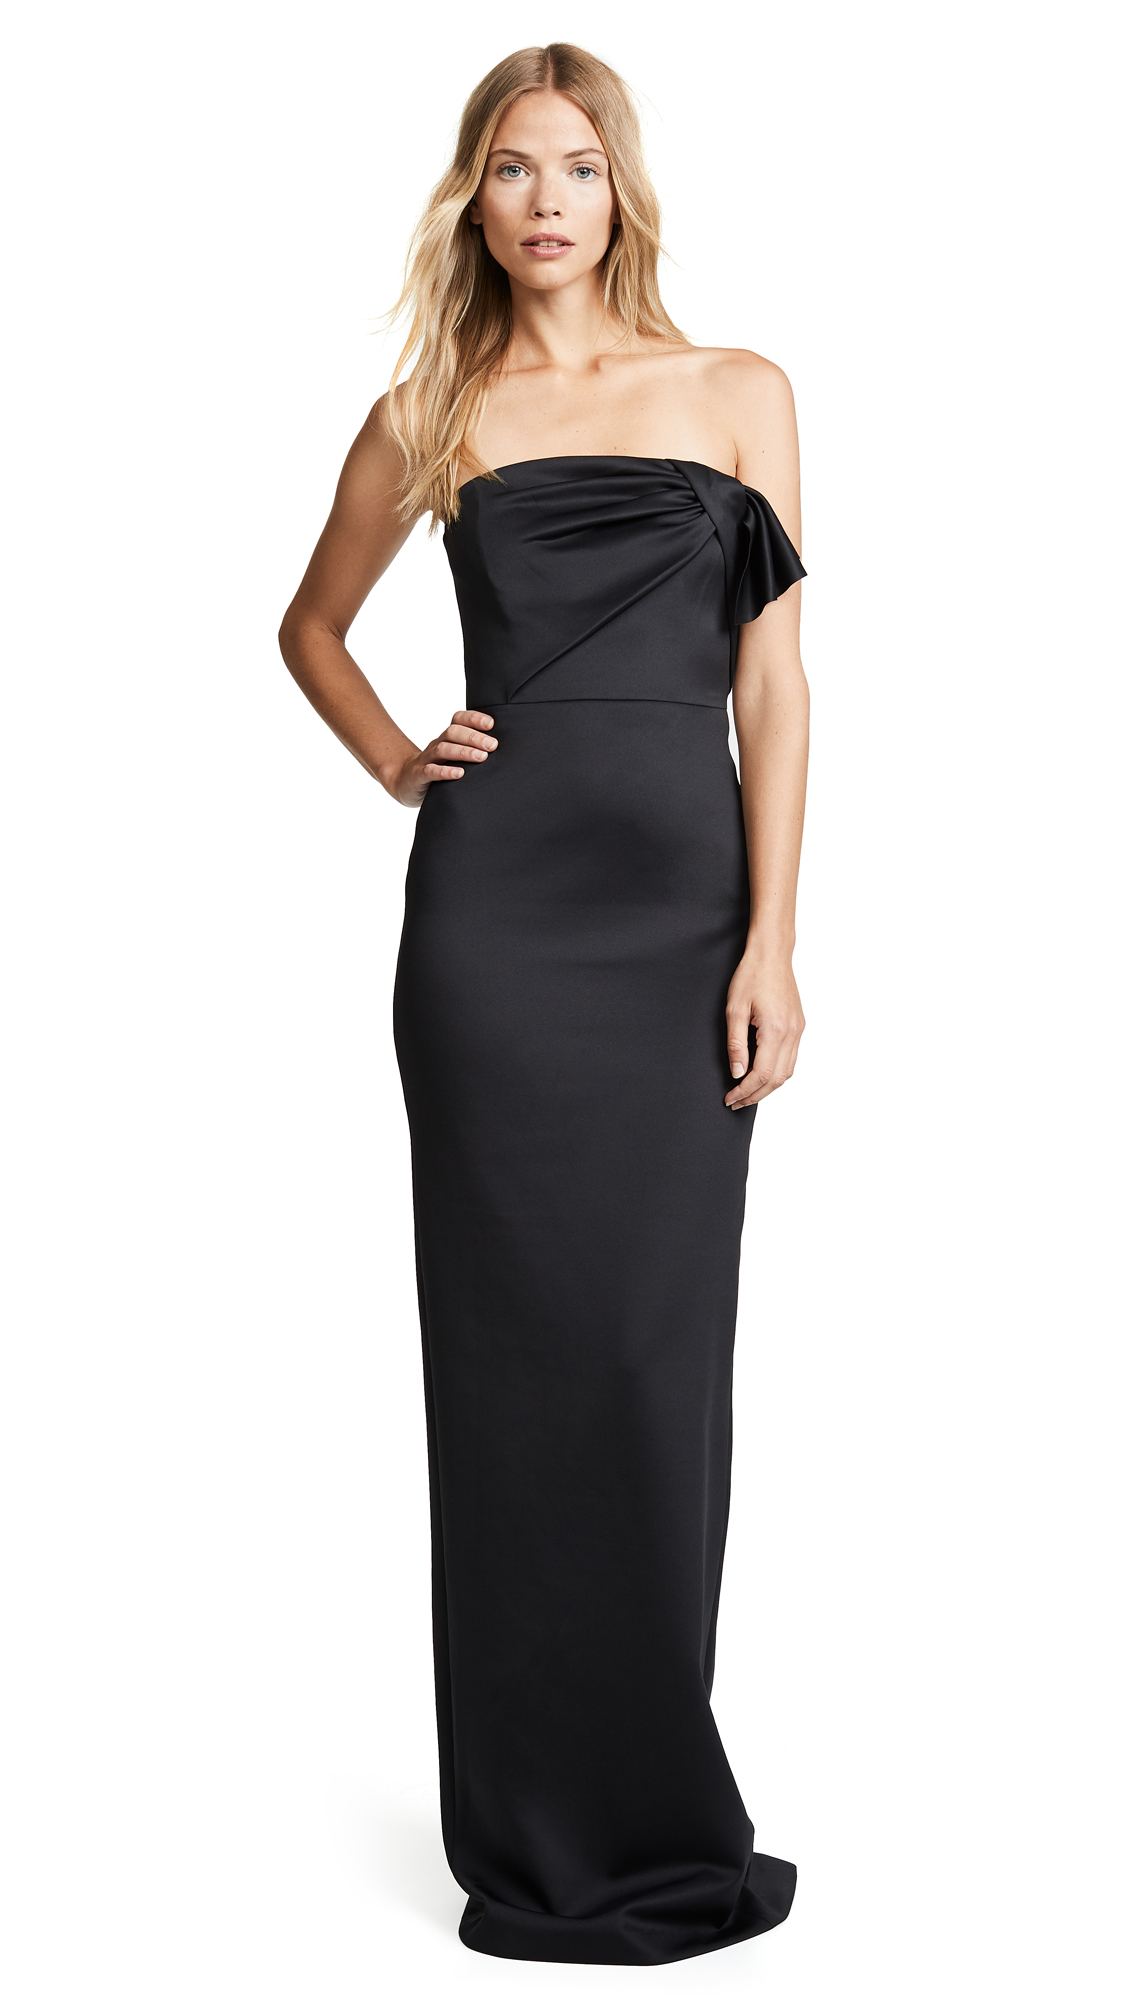 Black Halo Divina Gown - Black